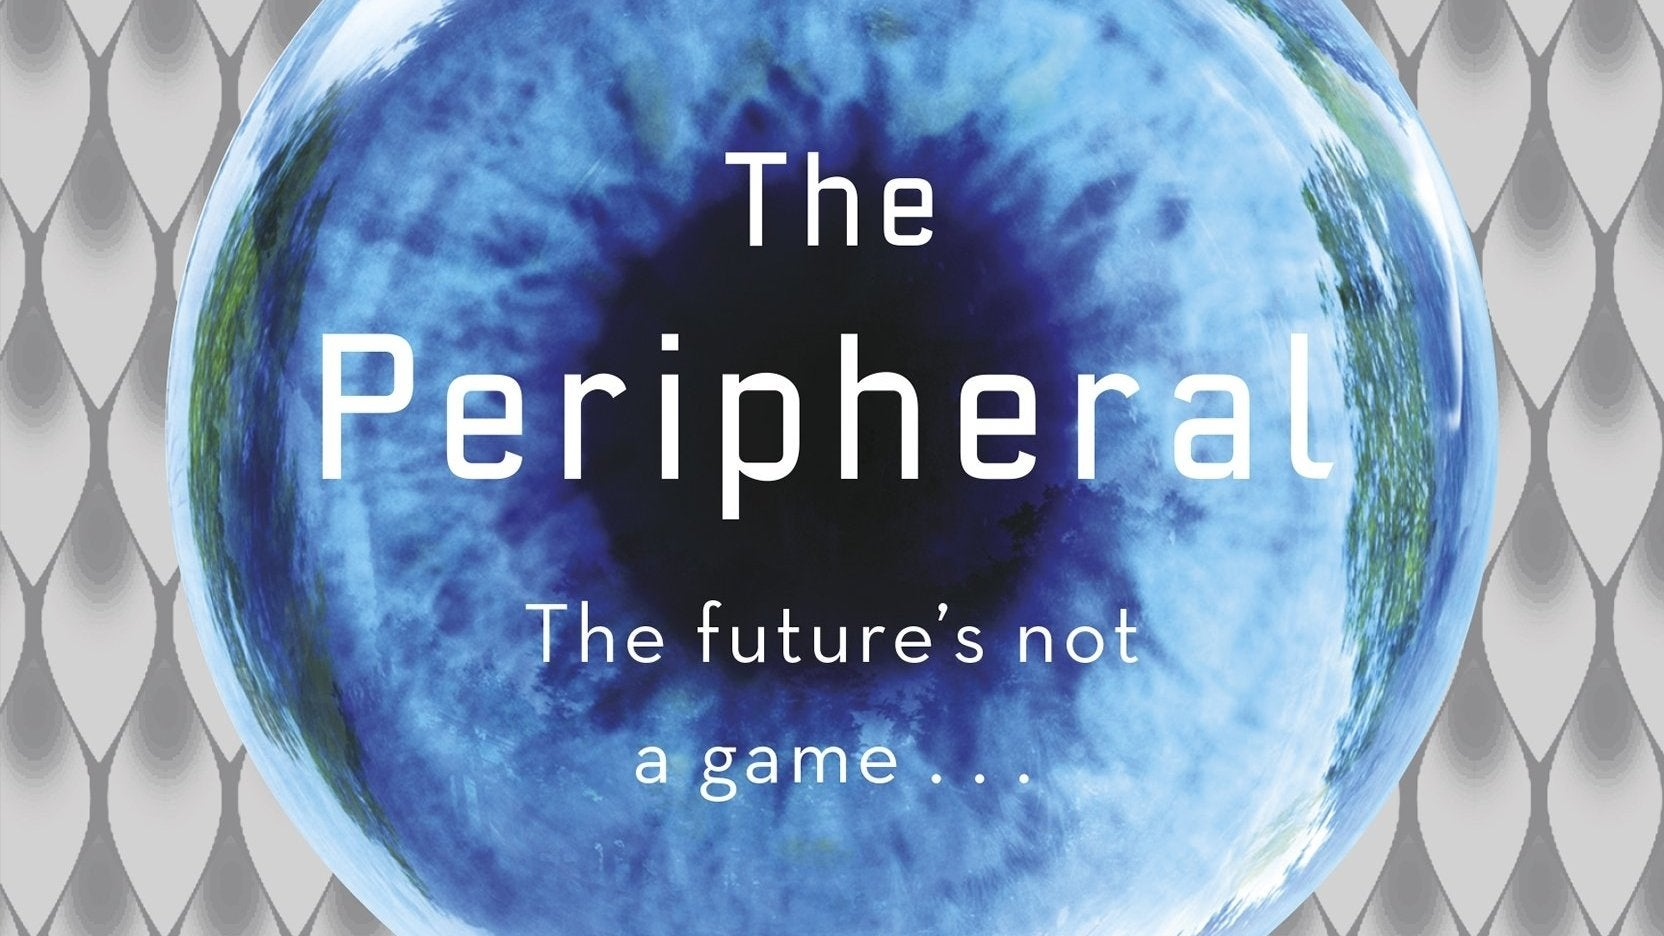 The Creators Of WestworldHead To Amazon With New Sci-Fi Series The Peripheral